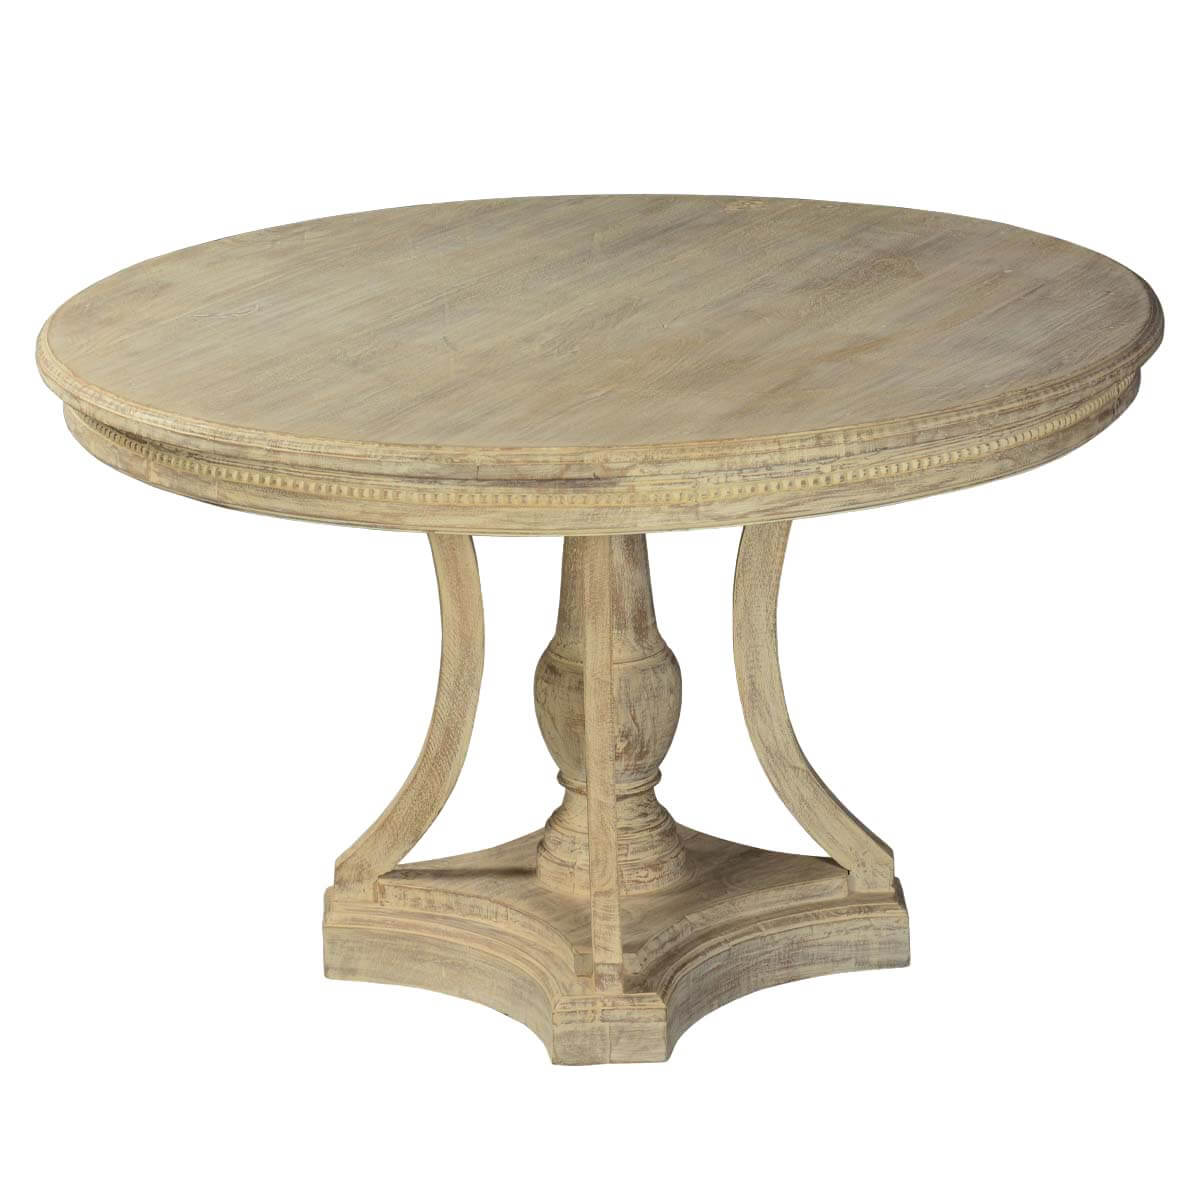 Whitewashed mango wood 47 round pedestal dining table for Round dining table